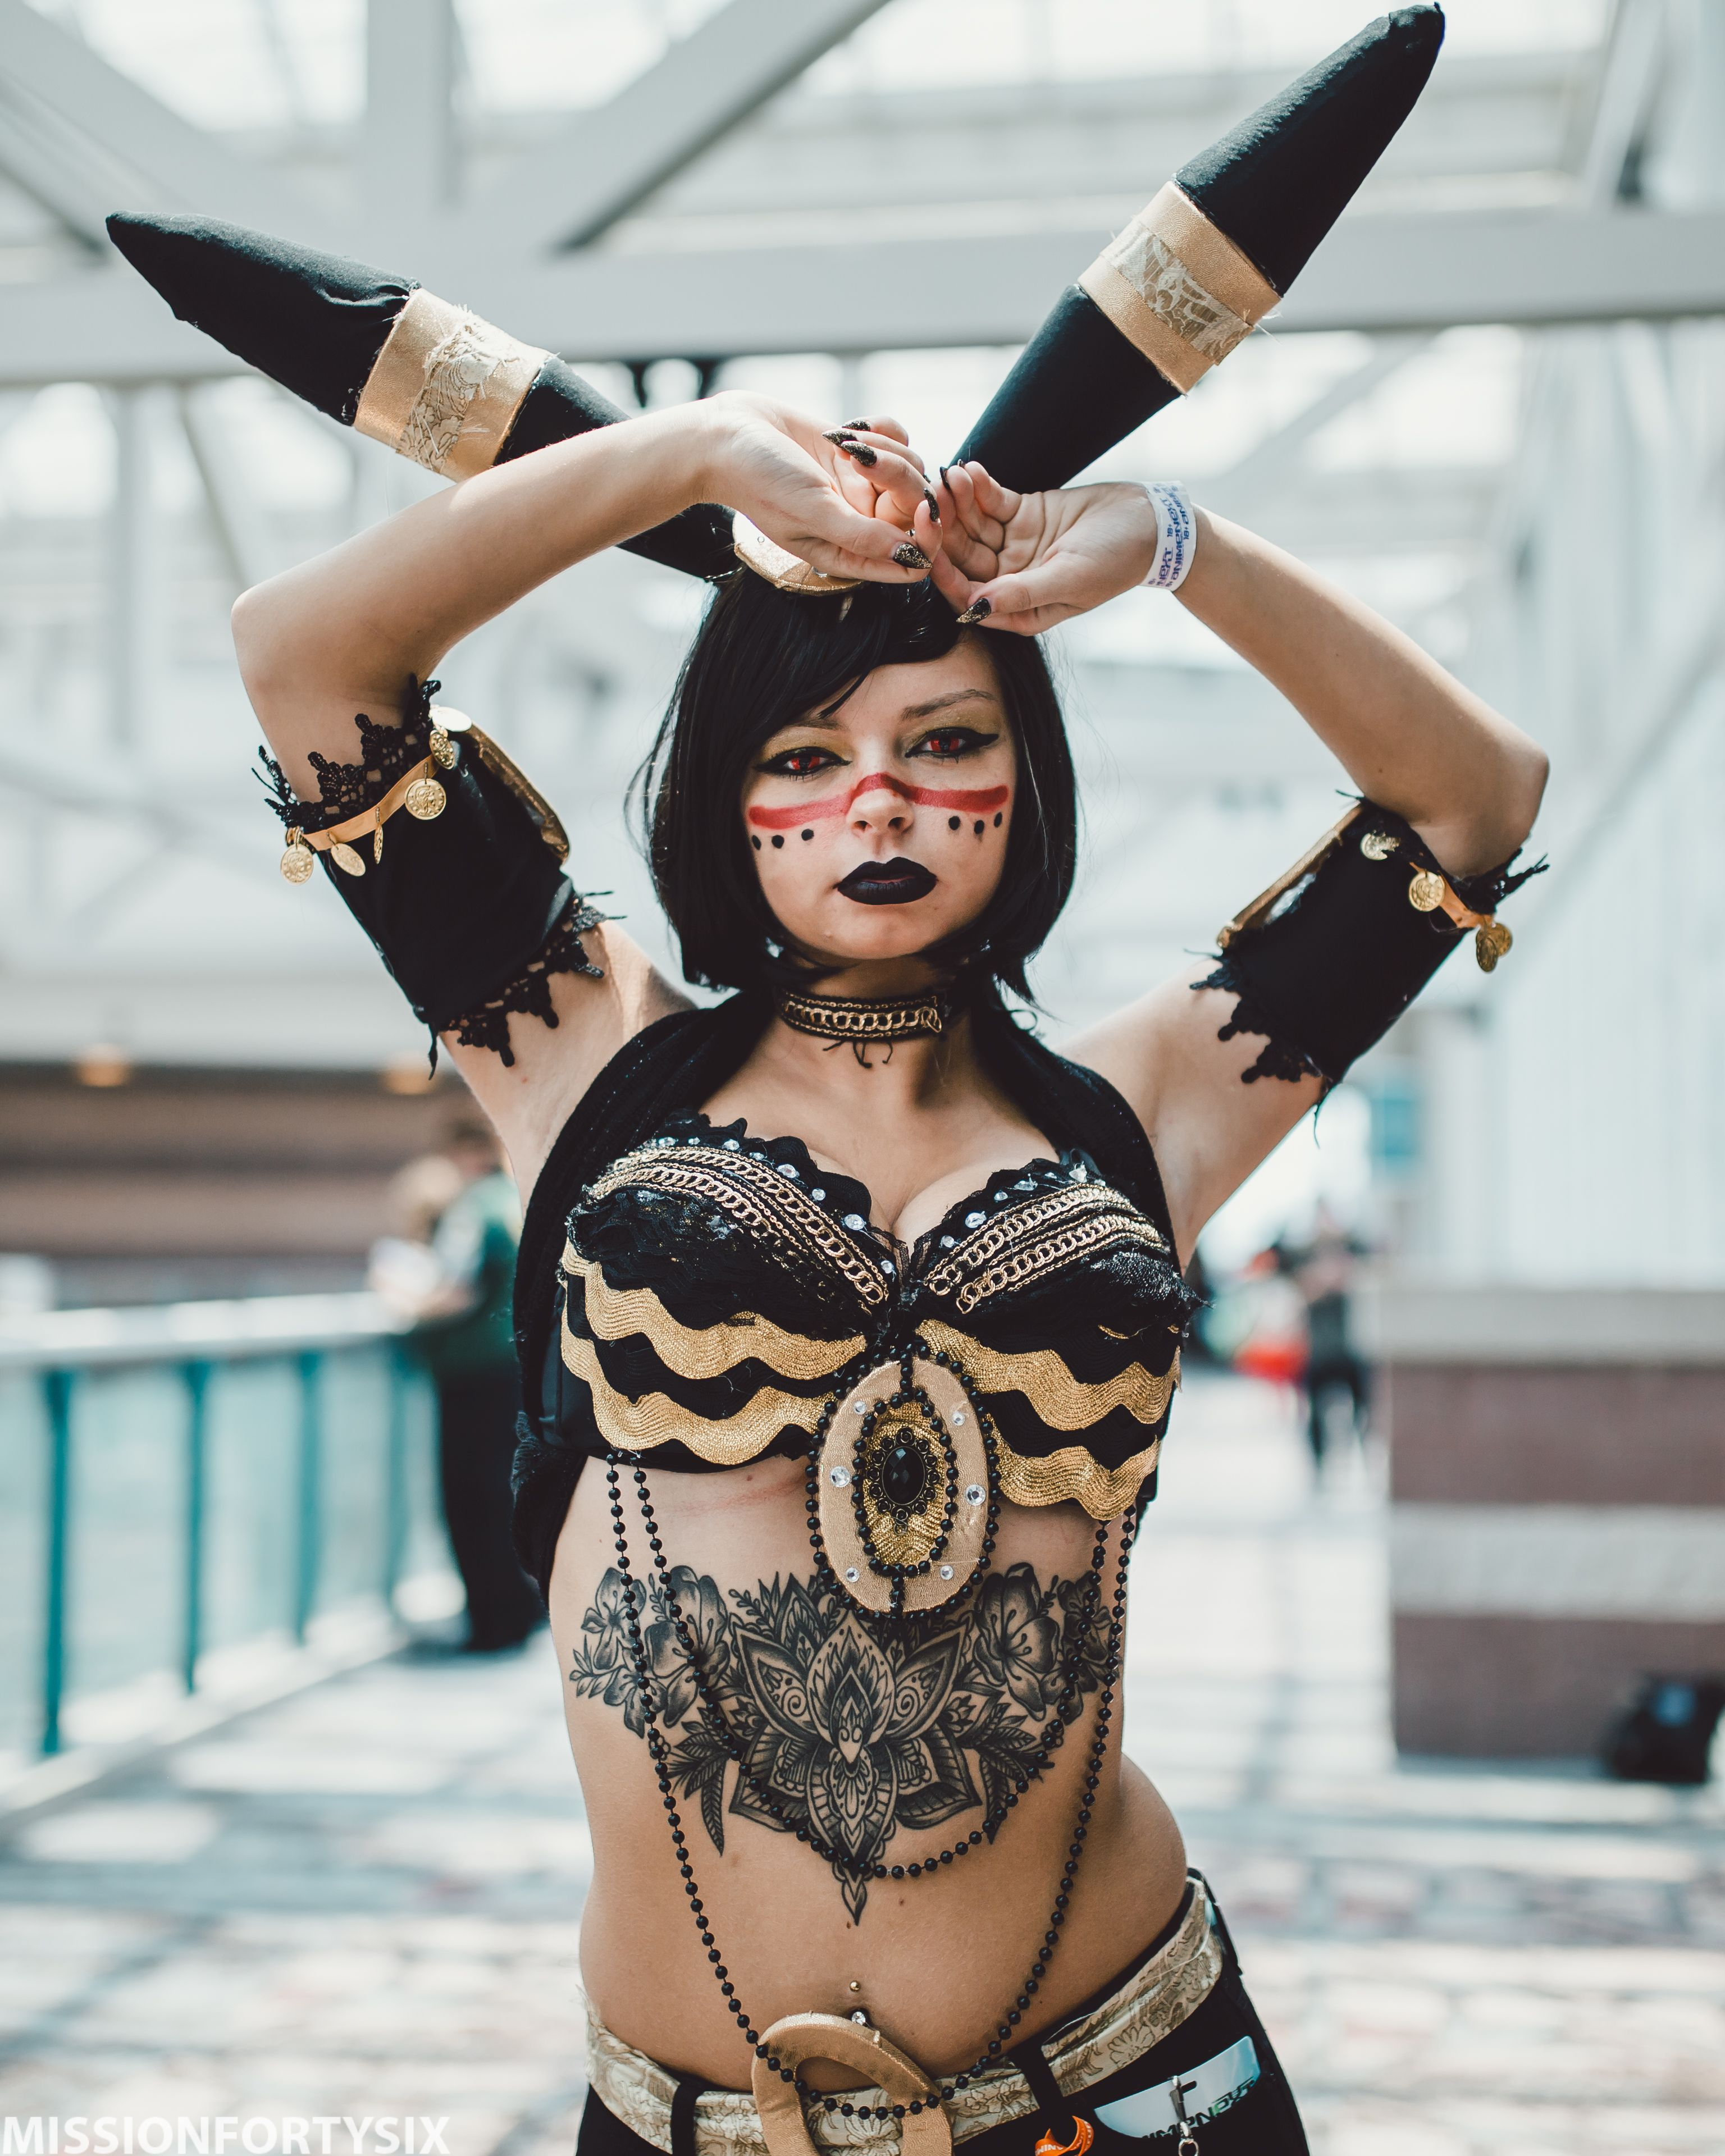 [Sexy Cosplay] Pokemon Umbreon Cosplay